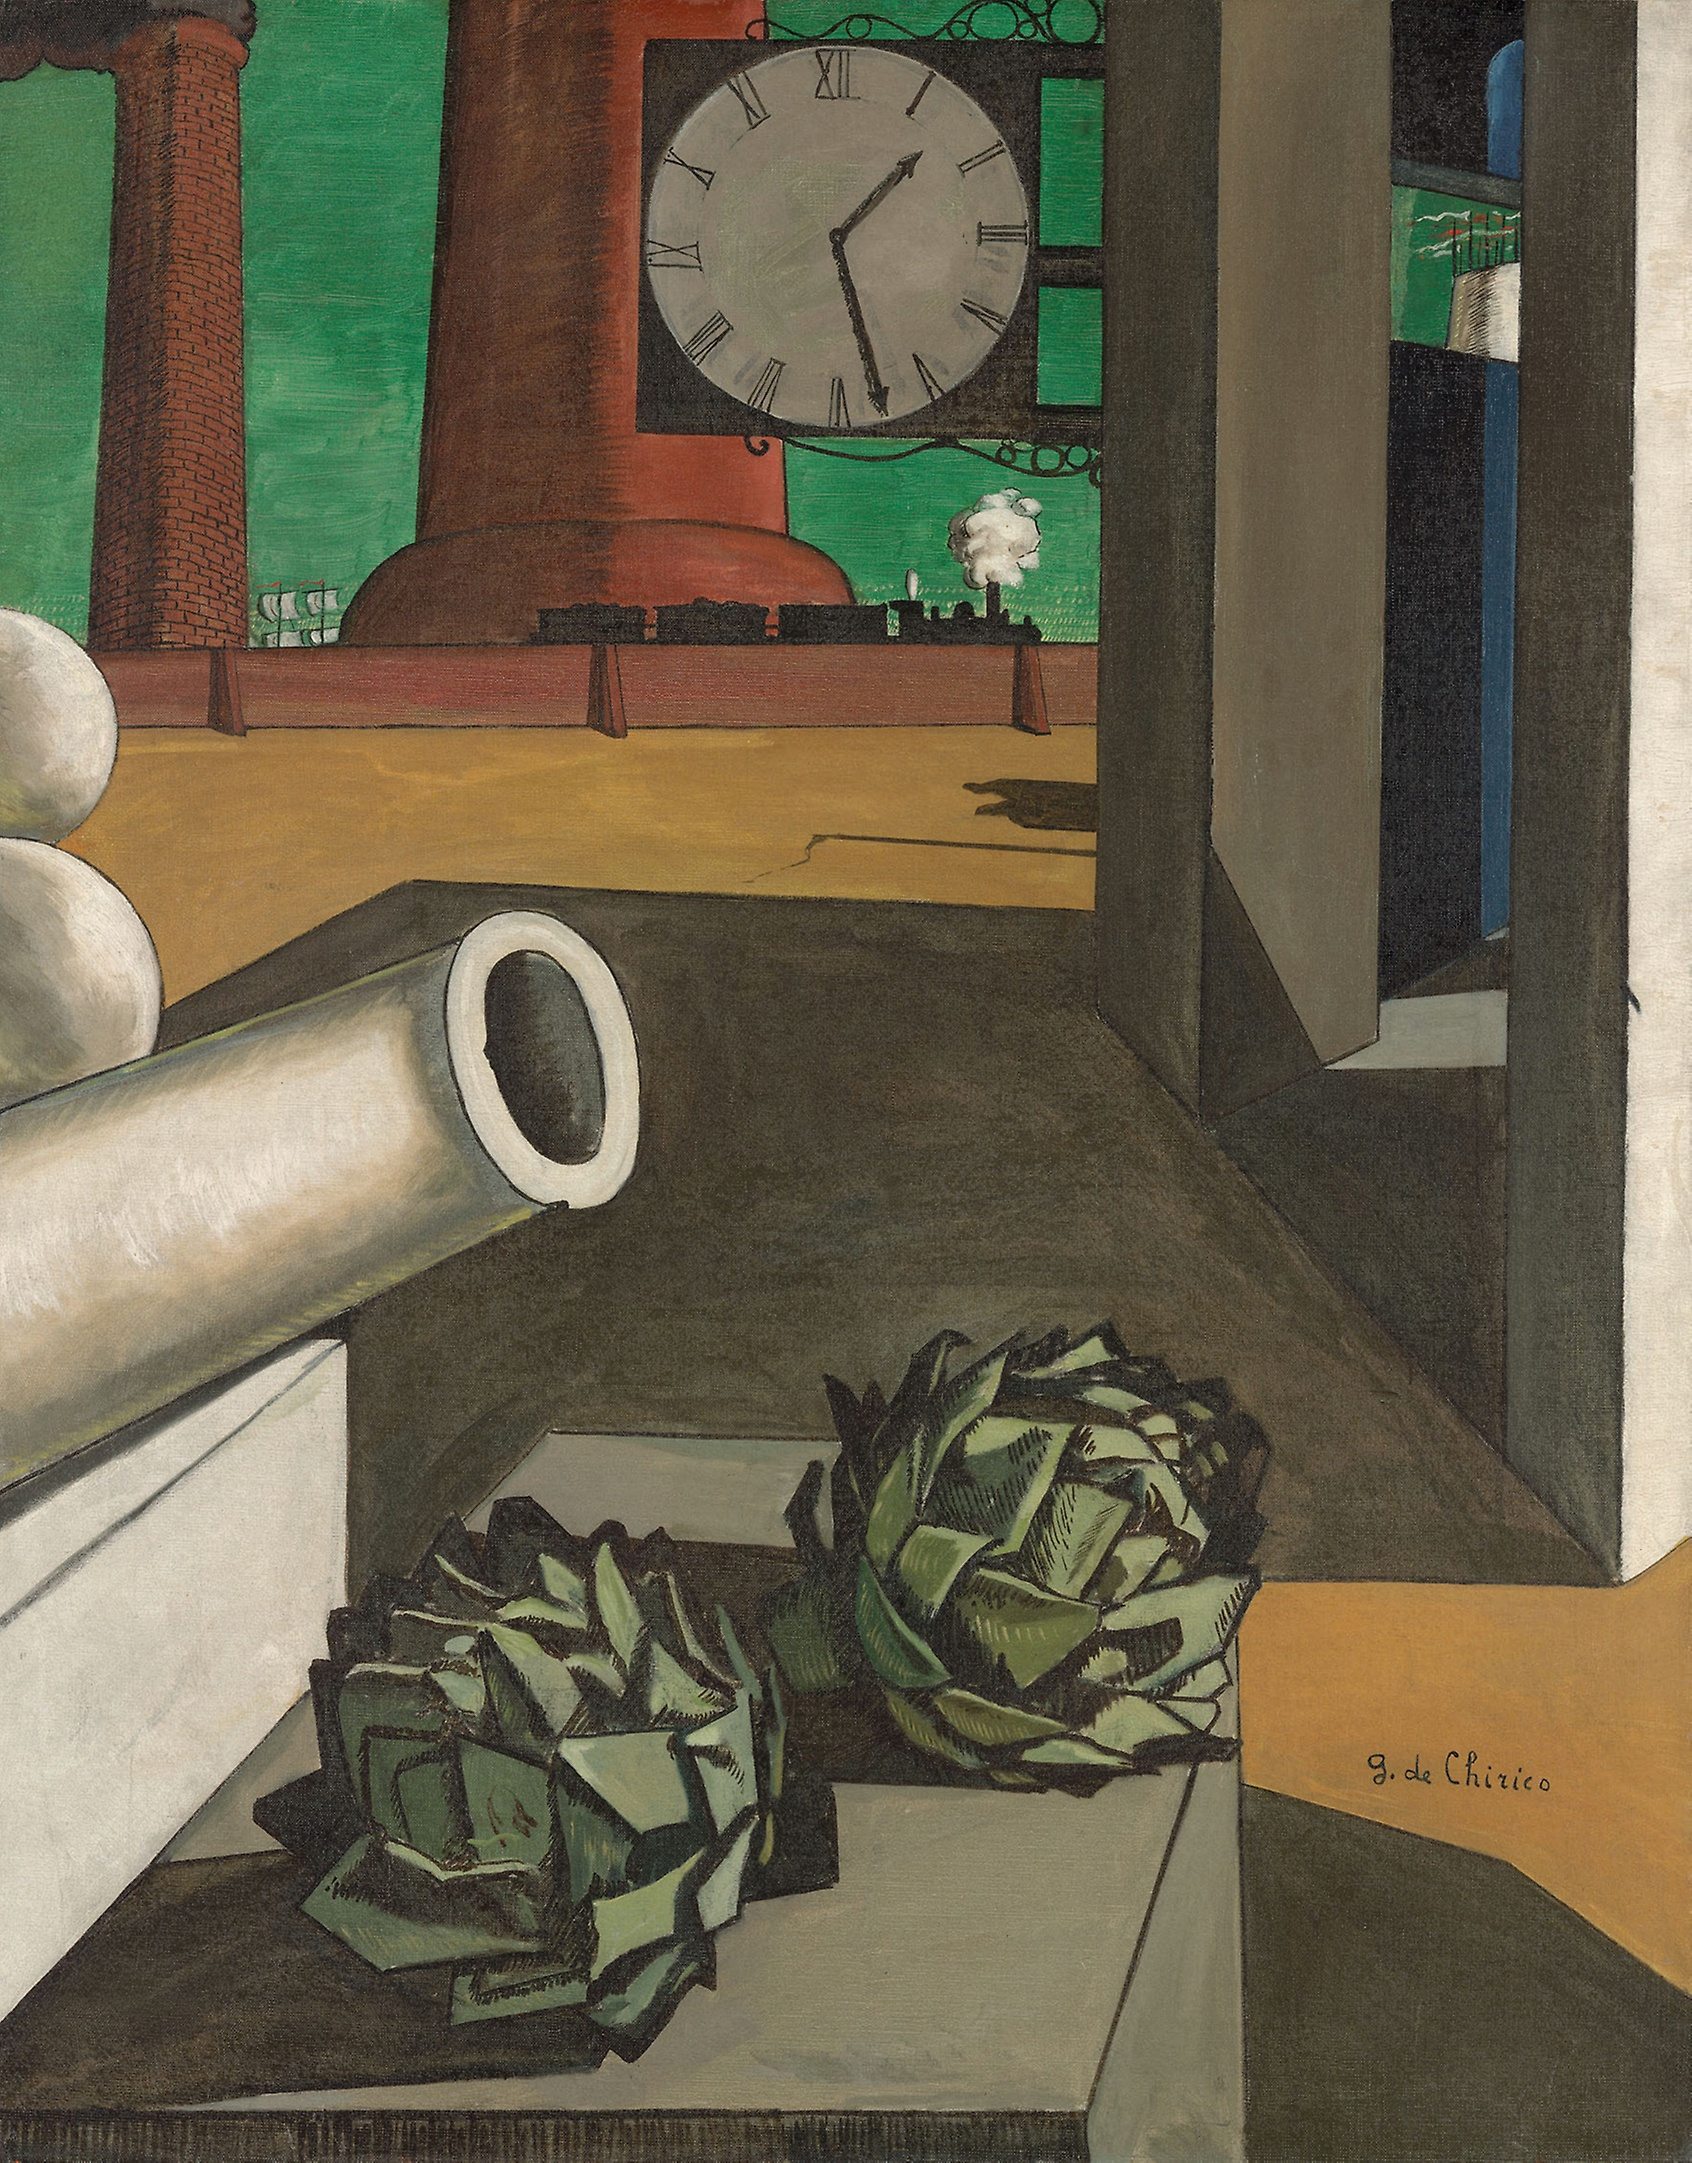 Phase Italia blog - Da Chicago oltre 52mila opere d'arte pronte per il download - De Chirico